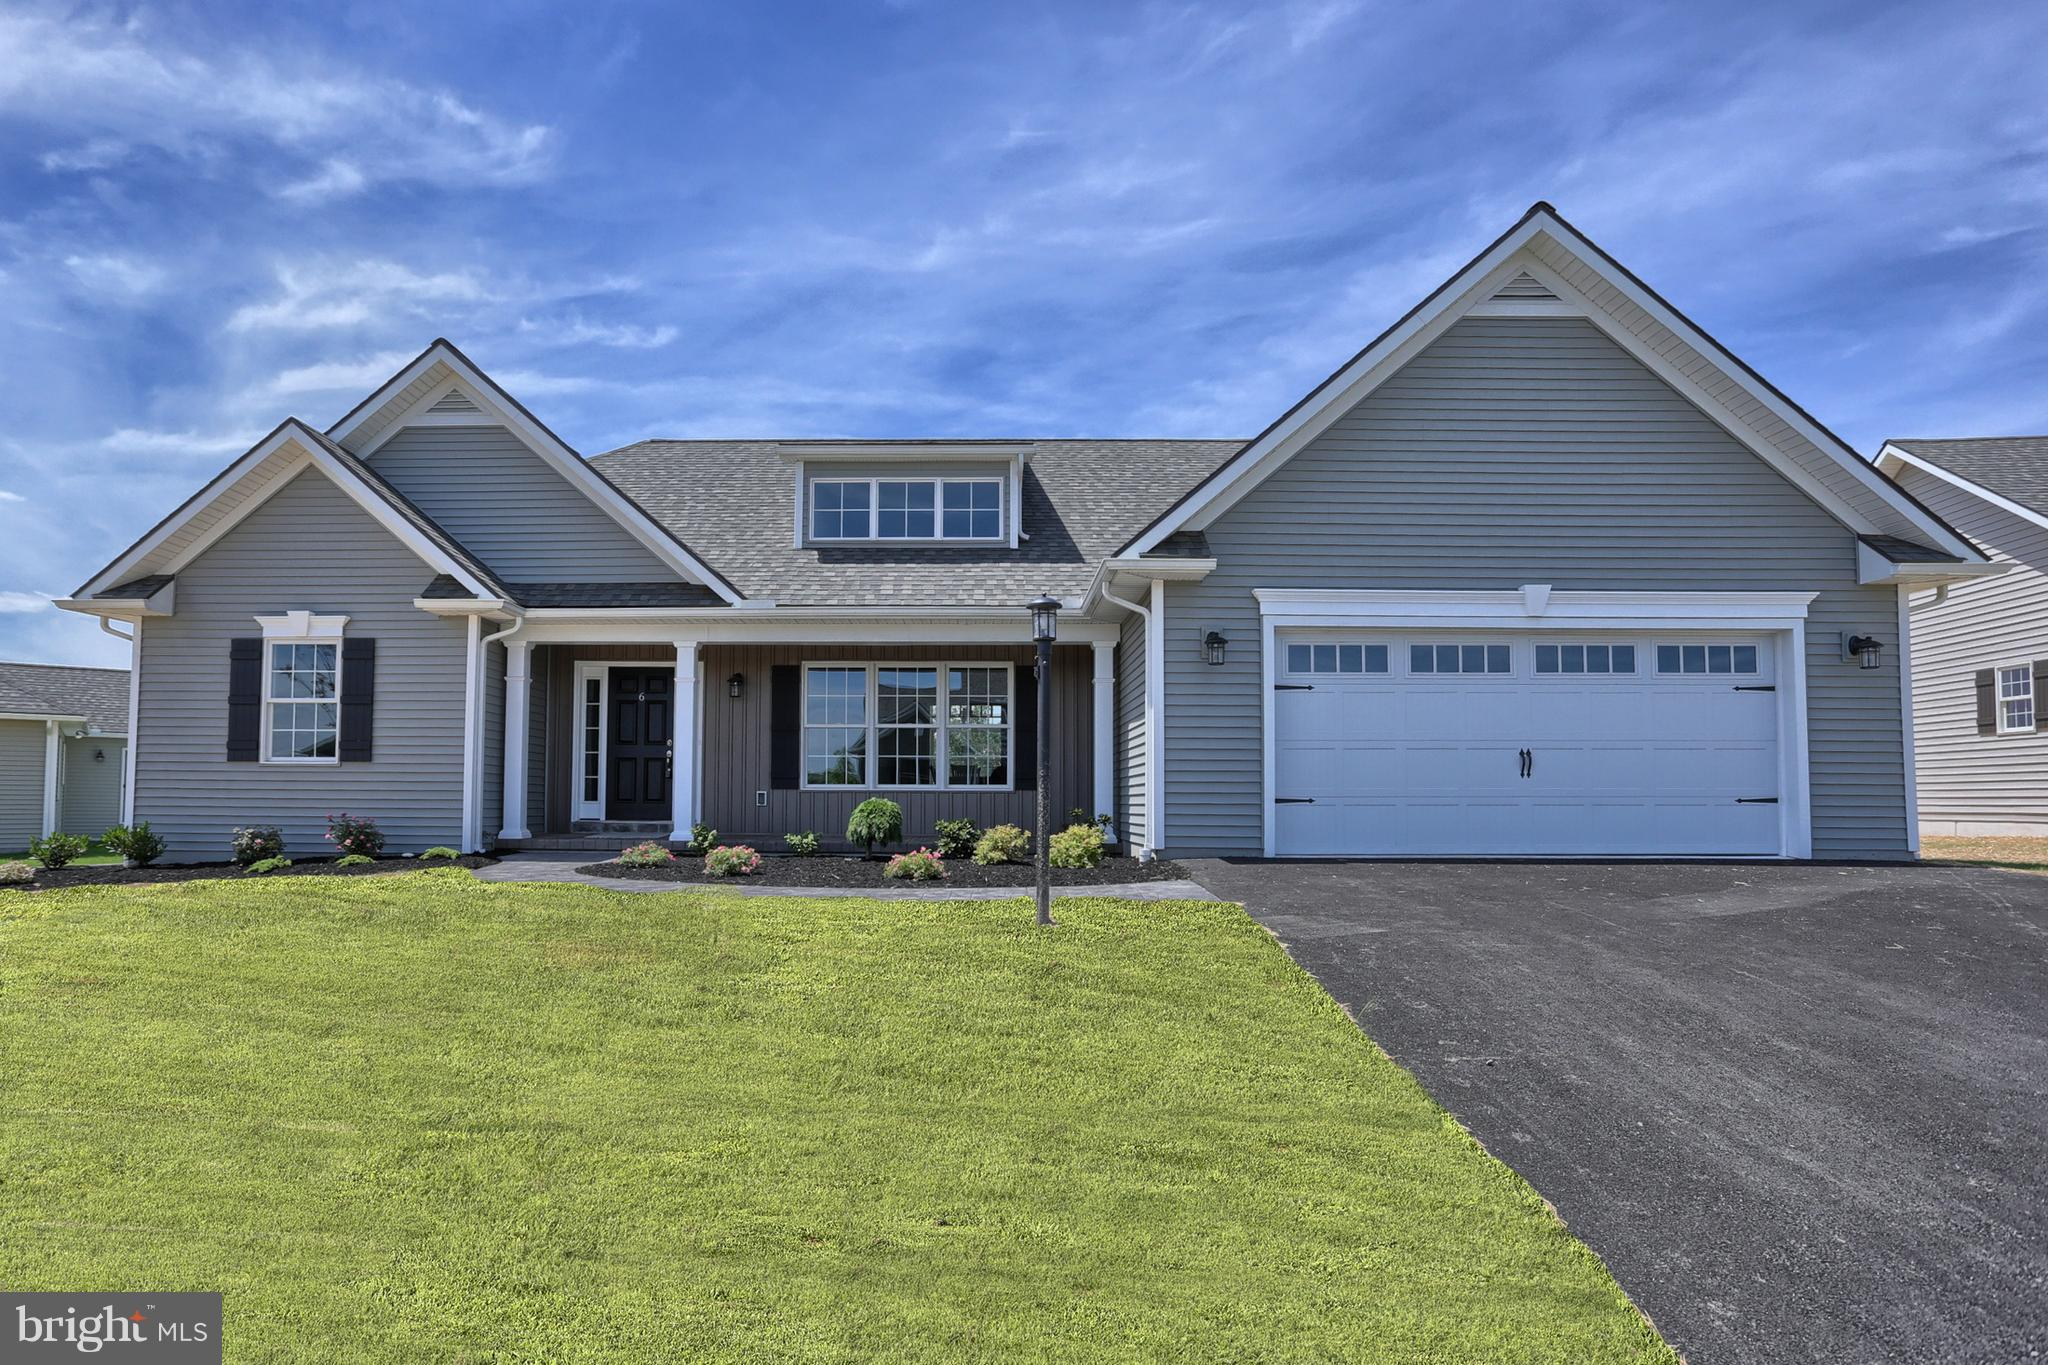 6 PARK VIEW DRIVE, MYERSTOWN, PA 17067